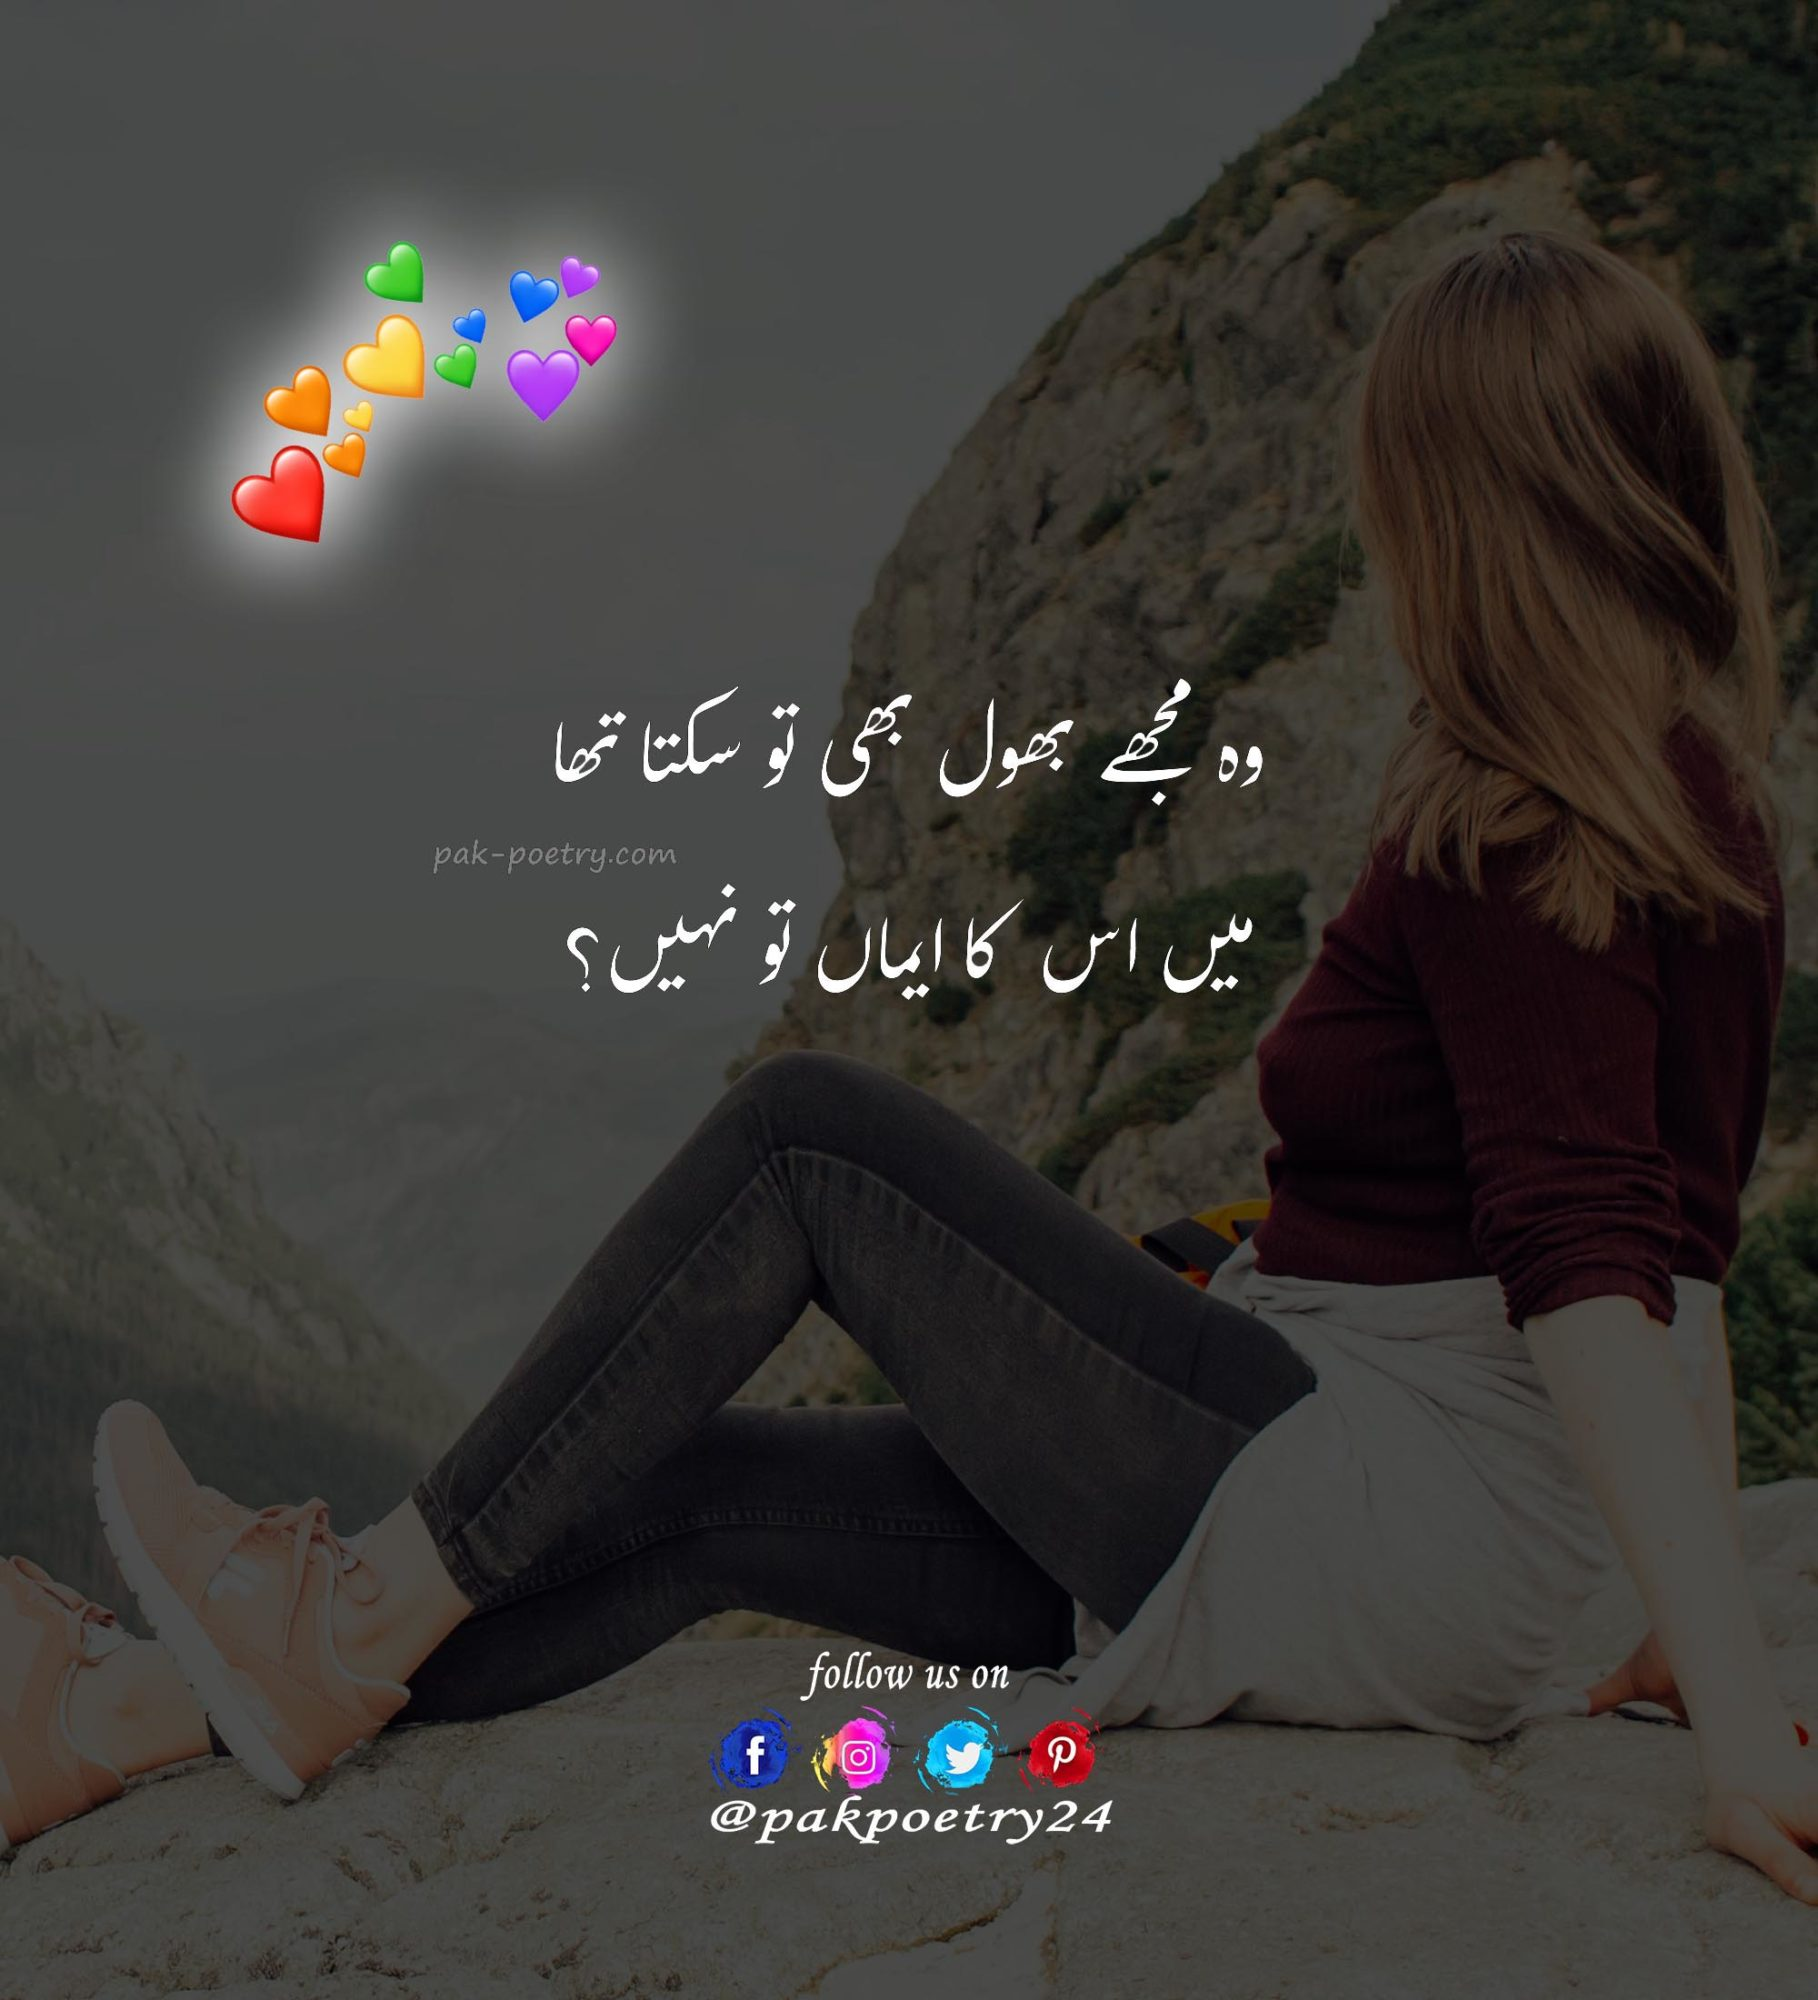 urdu poetry, poetry in urdu, poetry urdu, poetry, urdu shayari, potry in urdu, baat poetry, poetry.in.urdu, urdu poetry pic, poetry into urdu, urdu. poetry, porty urdu, urdu pietry, romantic poetry, romantic poetry in urdu, urdu romantic poetry, poetry romantic, romantic poetry urdu, poetry in urdu romantic, romantic poetry pics, love poetry in urdu romantic, romentic poetry, poetry, romantic pics poetry, poetry urdu romantic, love poetry in urdu, romantic poetry pic,